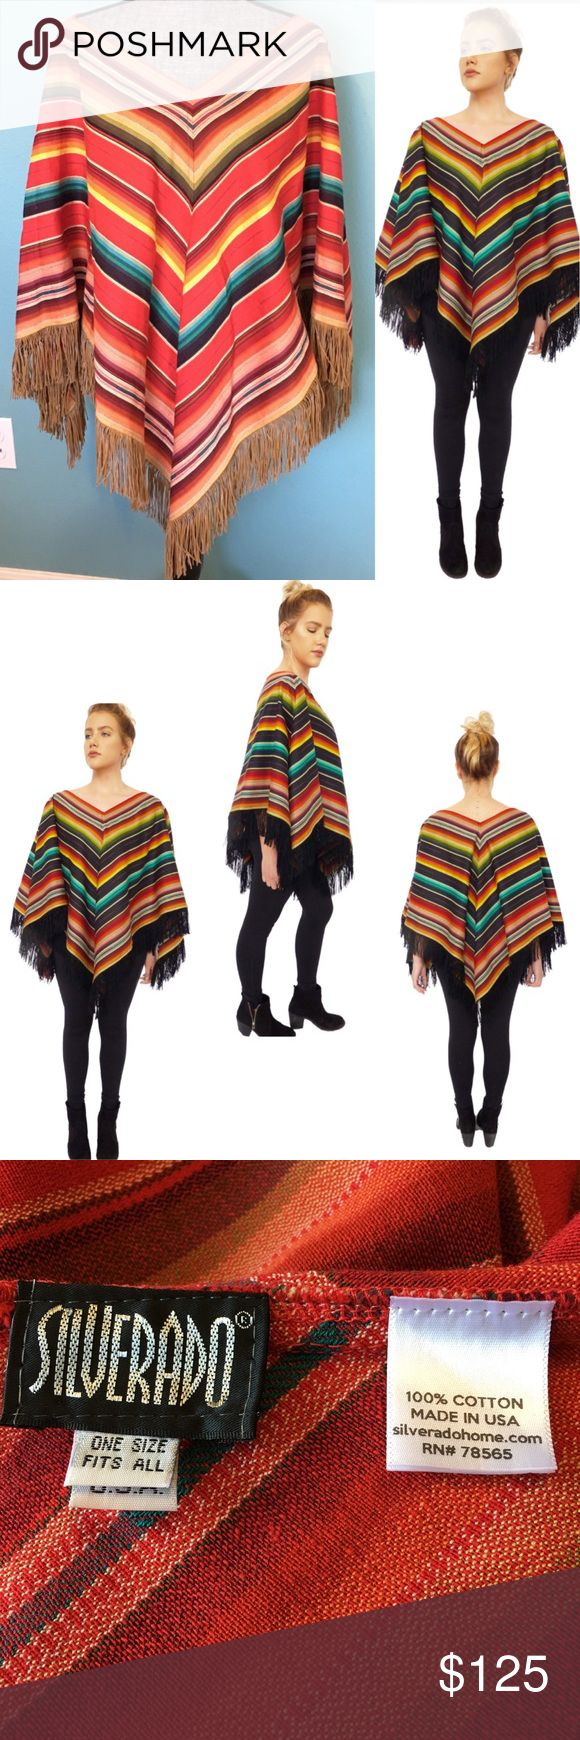 """Silverado Triangle Poncho OSFA Suede Fringe New Silverado Home NEW without Tags Triangle Poncho, Multi-color Pullover style, made in the USA, OSFA One size with Suede look Fringe. 100% cotton Poncho, Vneck front & back. Length 26"""" from V to hem. 26"""" from shoulder to wrist. NWOT Silverado Sweaters Shrugs & Ponchos"""